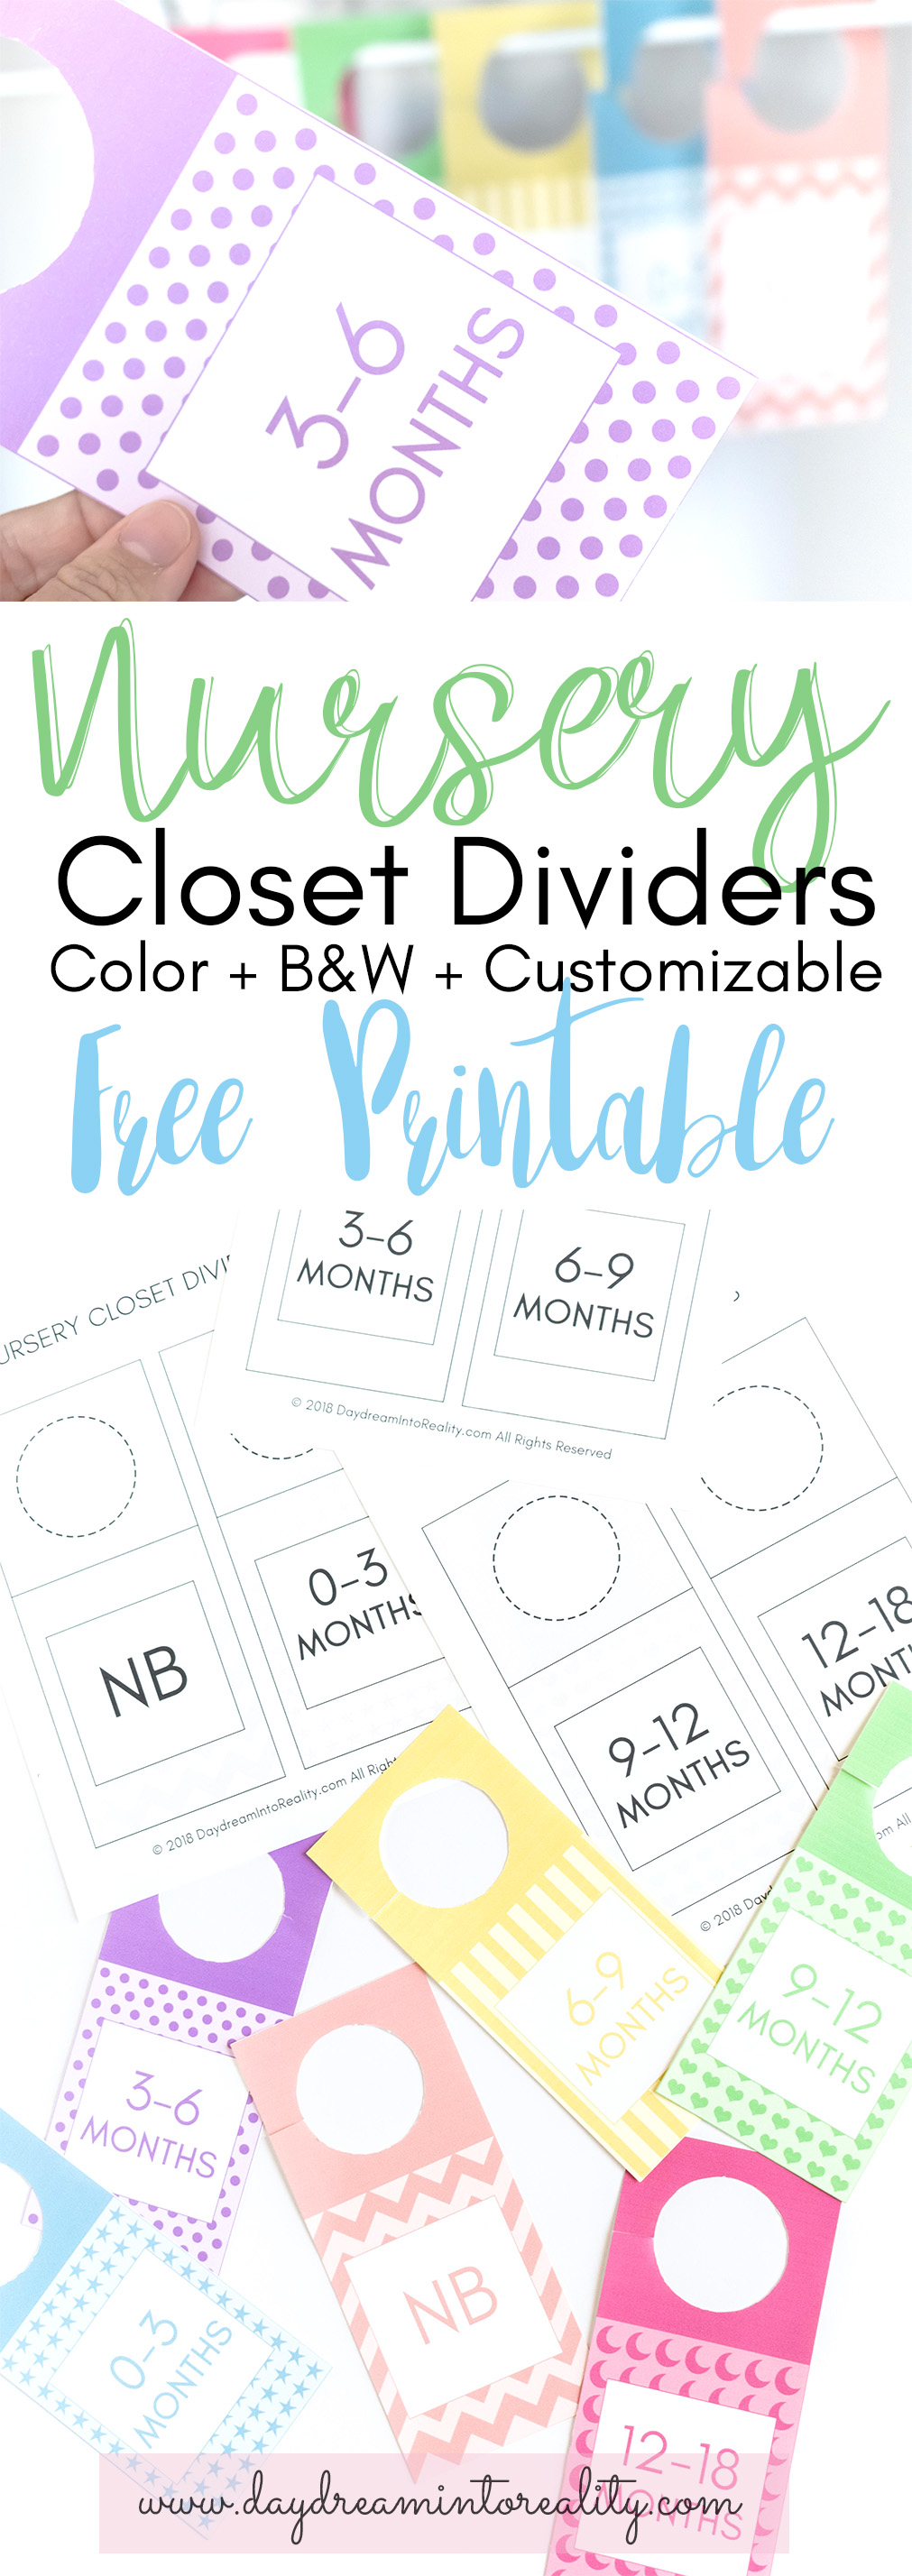 photograph relating to Free Printable Closet Dividers known as Nursery Closet Dividers Cost-free Printables